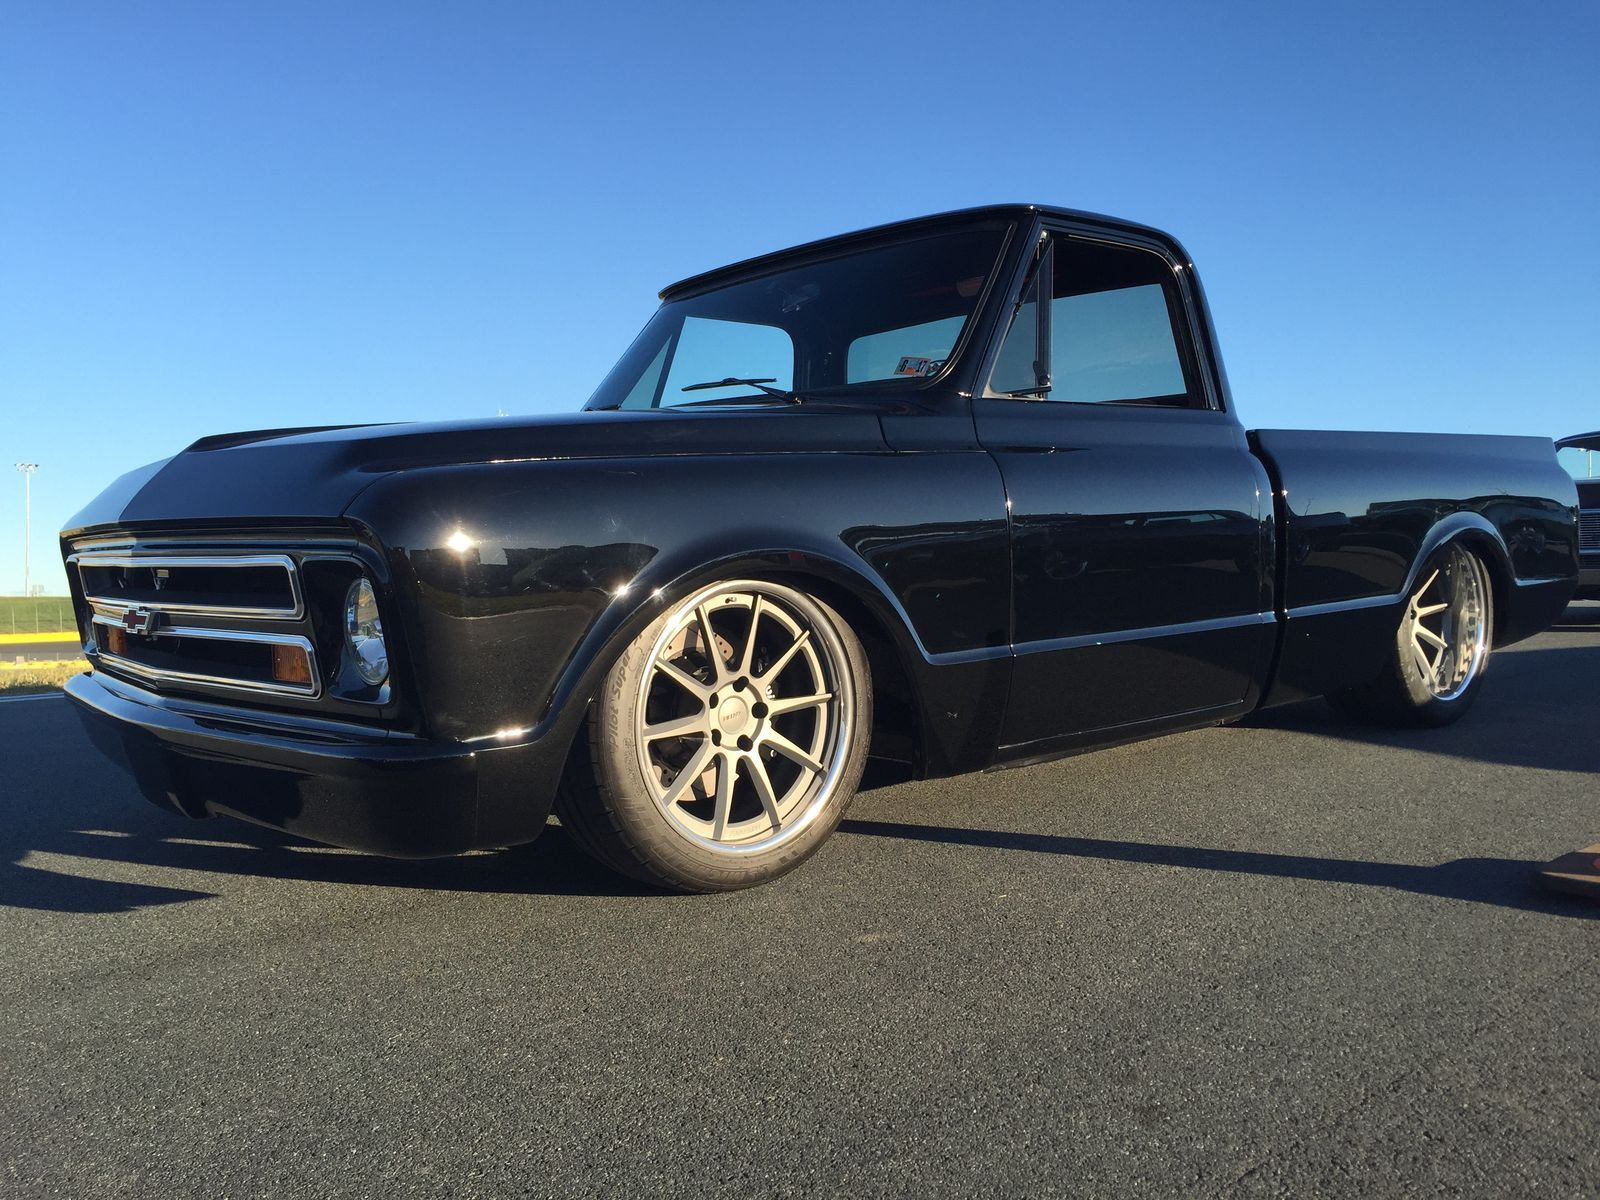 1970 Chevrolet C-10 | Steve & Danielle Locklin Earn Goodguys Charlotte Chevy Truck Pick With Their '70 C10 on Forgeline RB3C Wheels